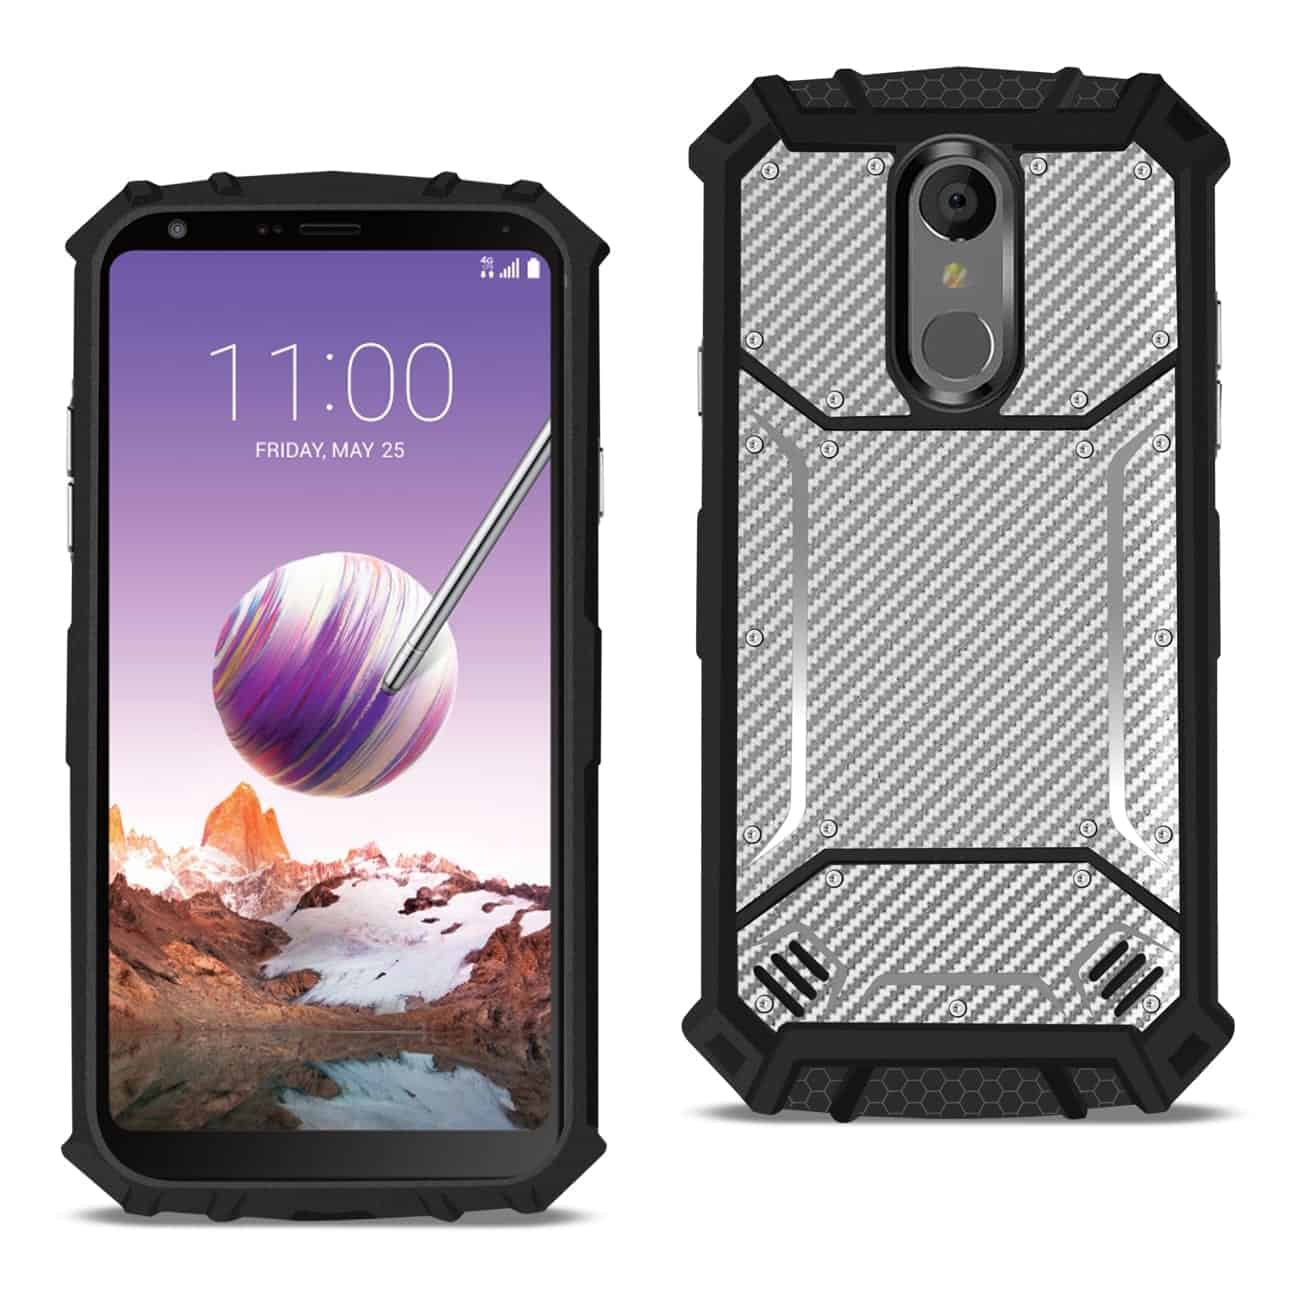 LG STYLO 4 Carbon Fiber Hard-shell Case In Gray